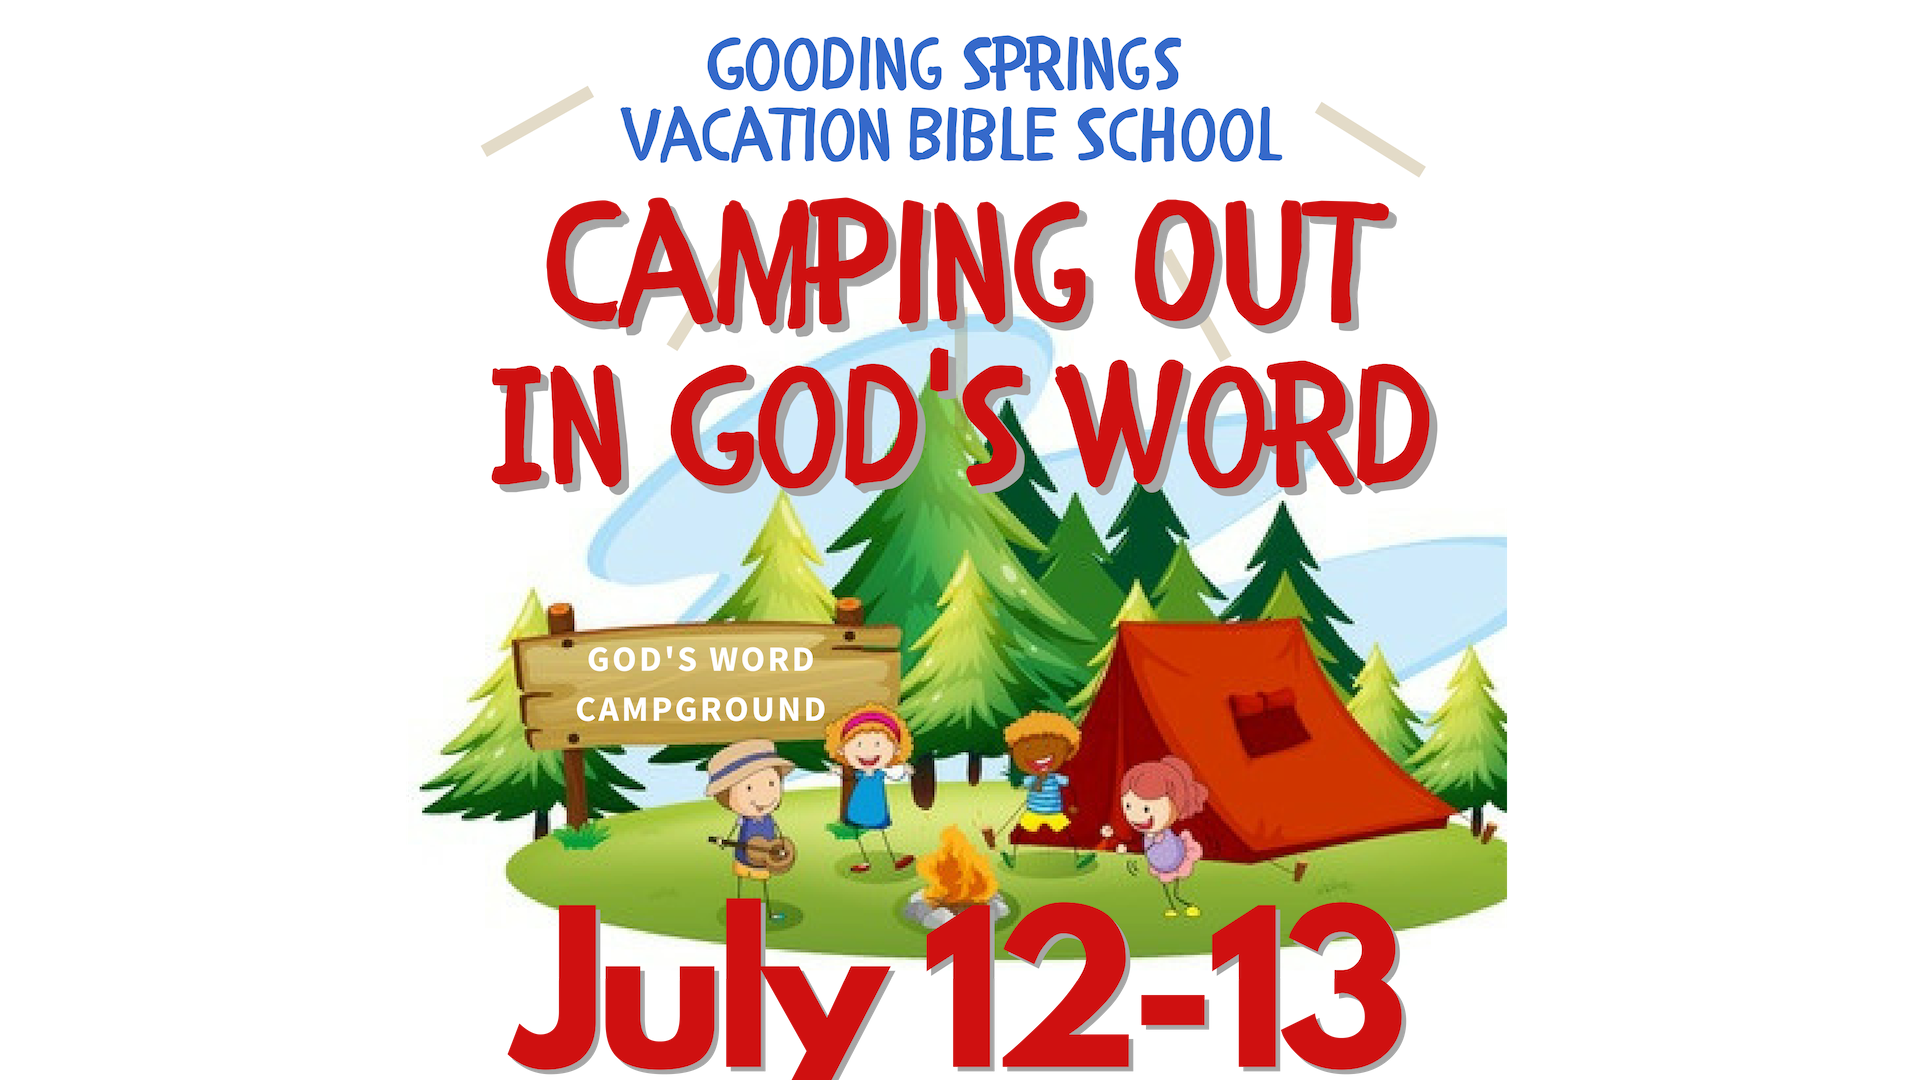 Copy of Camping Out In God's Word (1).png